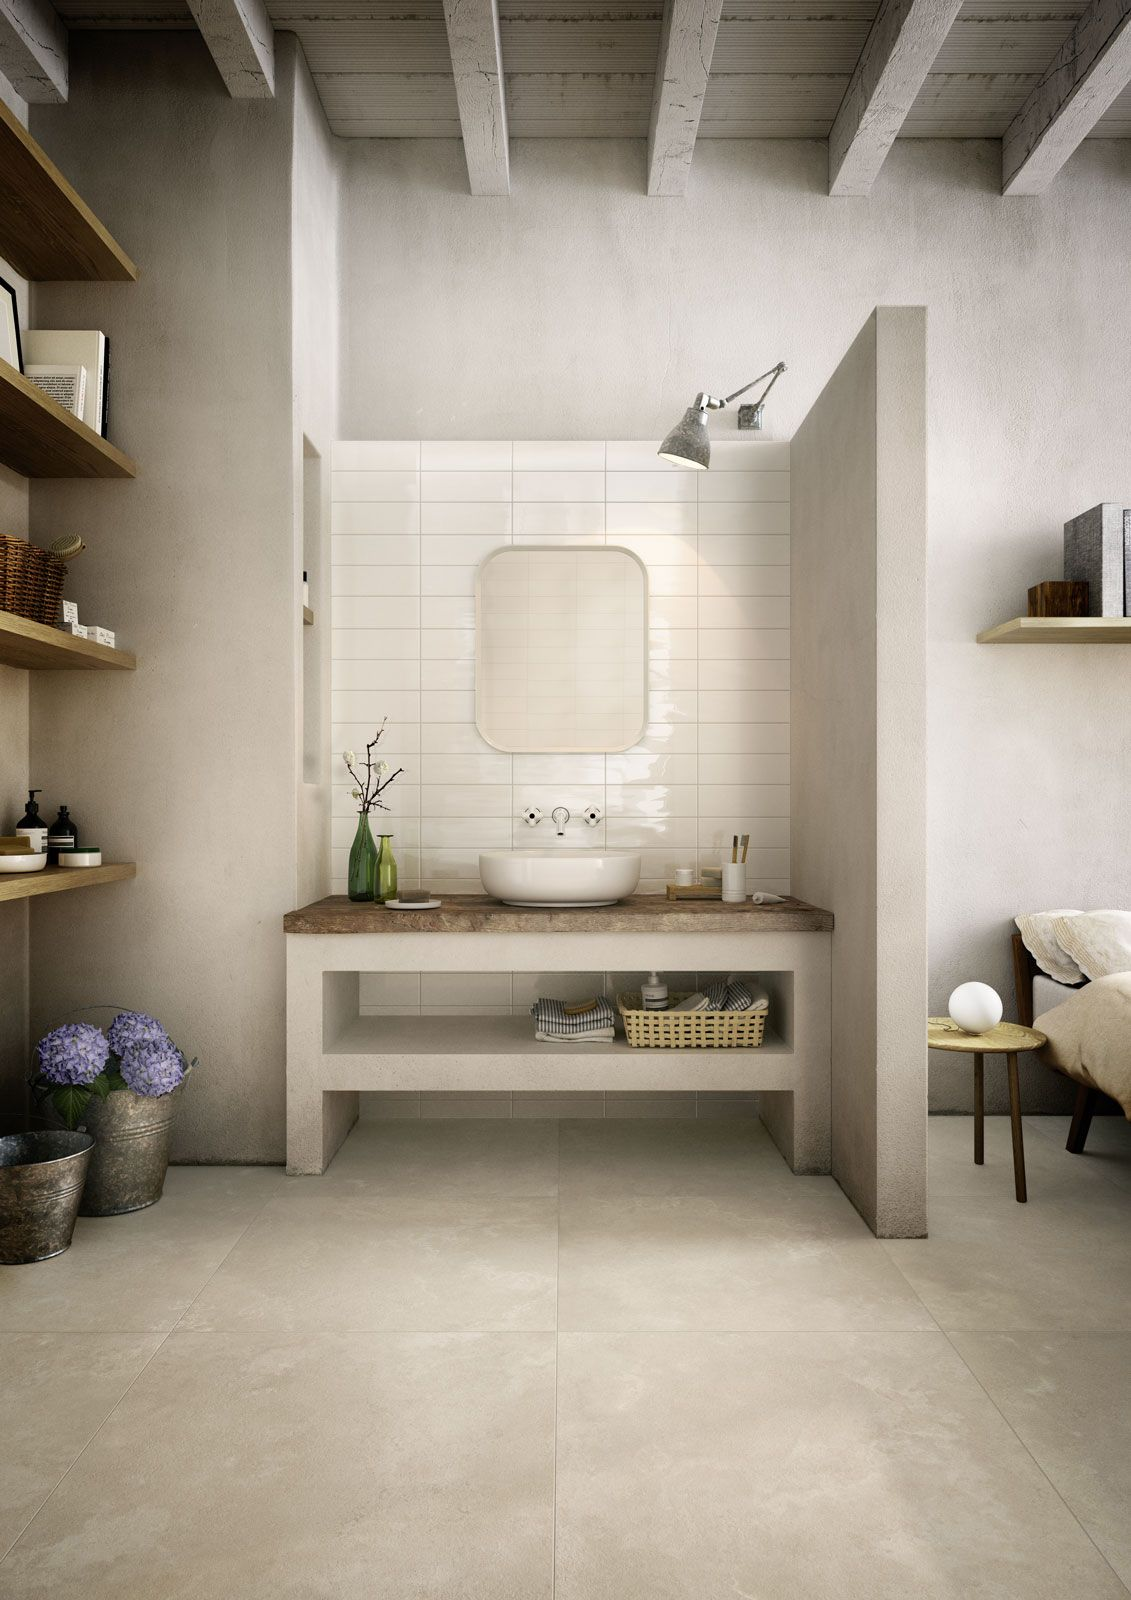 cost of tile for bathroom floor%0A Available on all the Porcelain stoneware flooring by Marazzi Timeless at  the     BEST PRICE GUARANTEED     Discover Marazzi Timeless Beige cm MMWP Stone